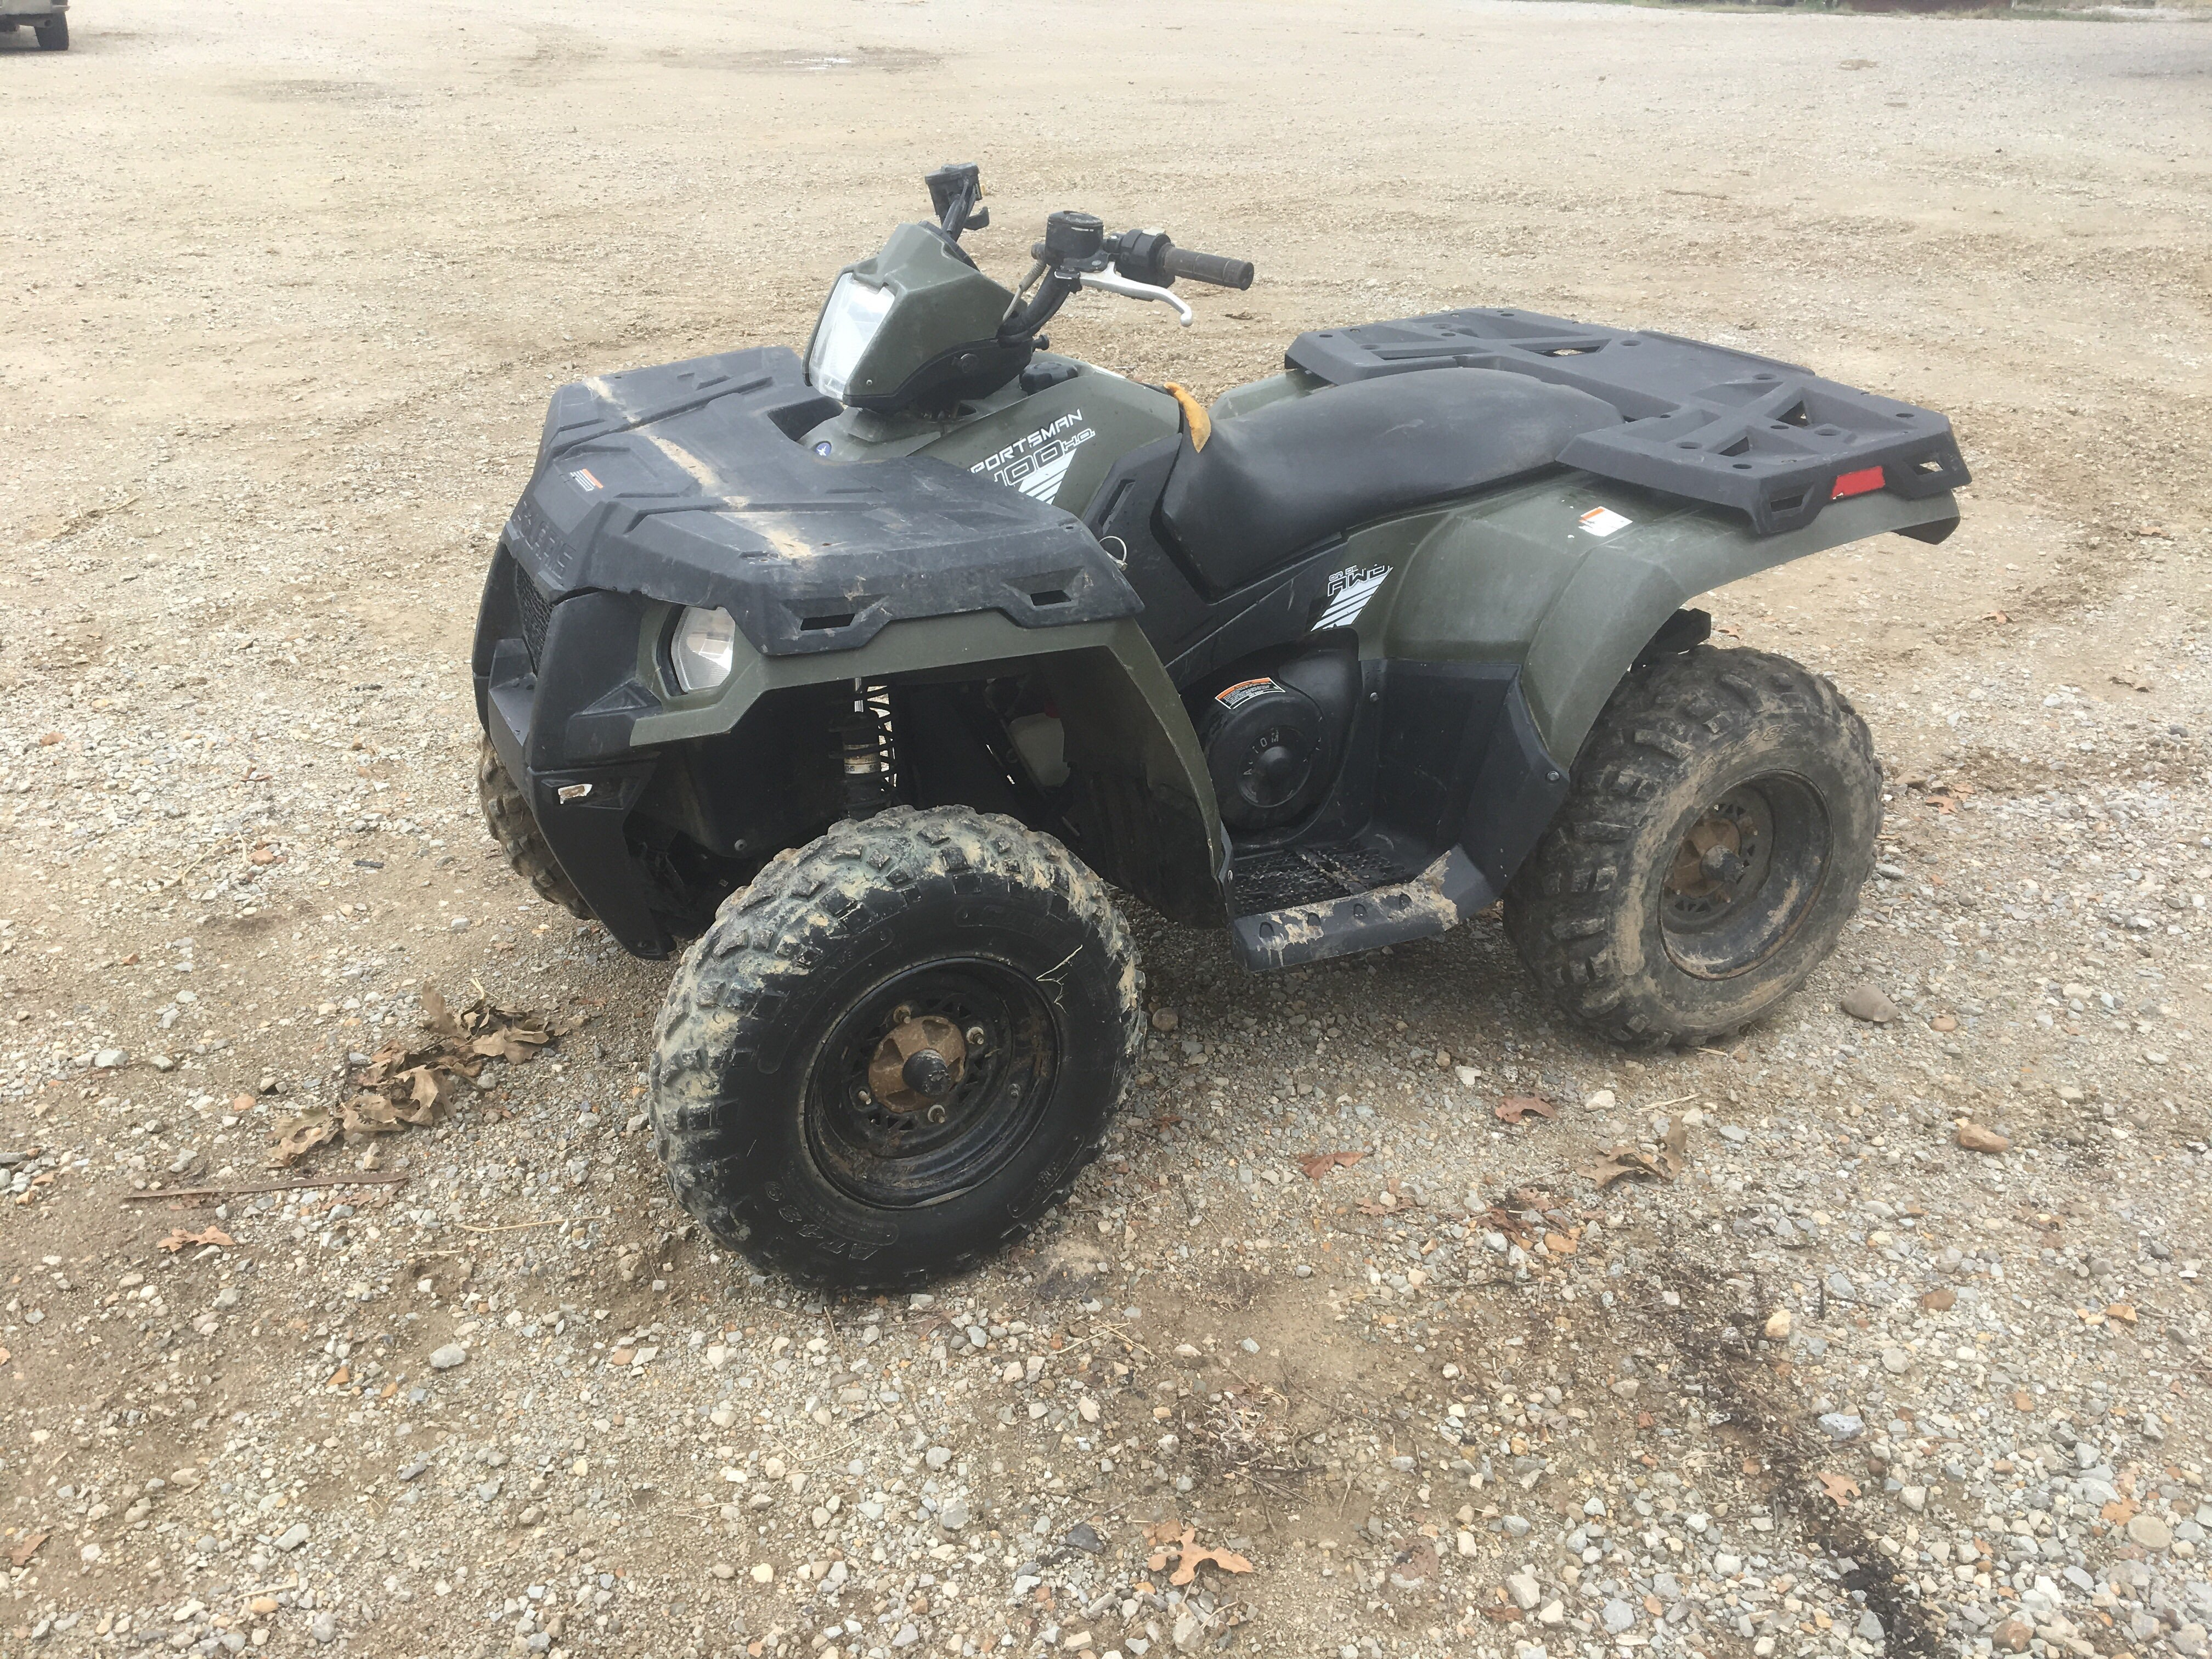 2014 Polaris Sportsman 400 | Arkansas Hunting - Your